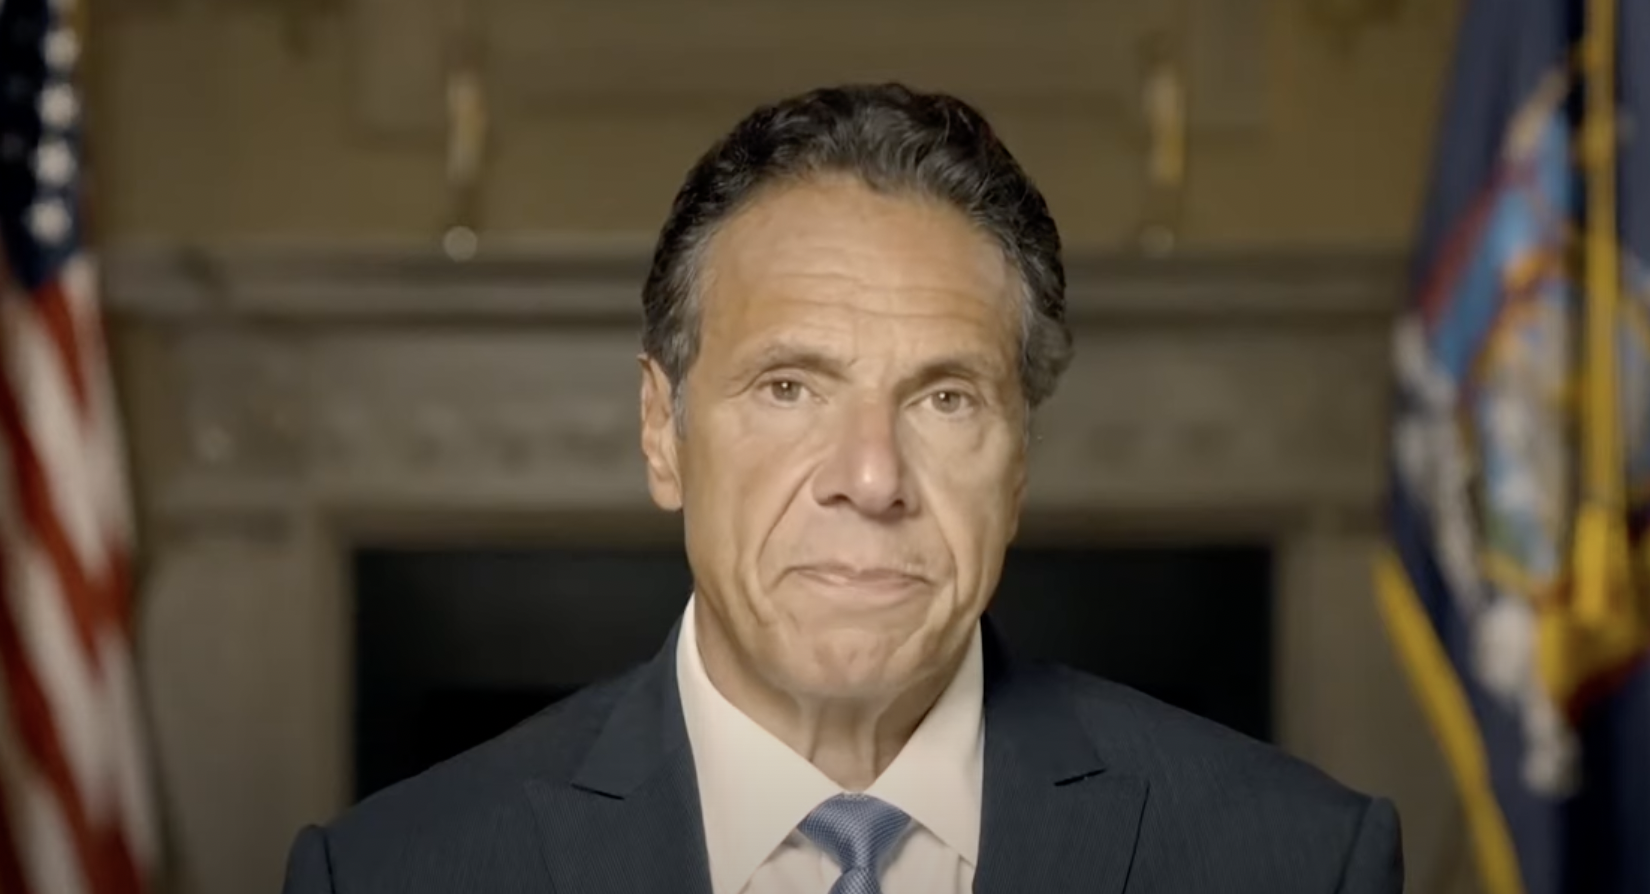 Governor Cuomo sexually harassed current and former employees: report